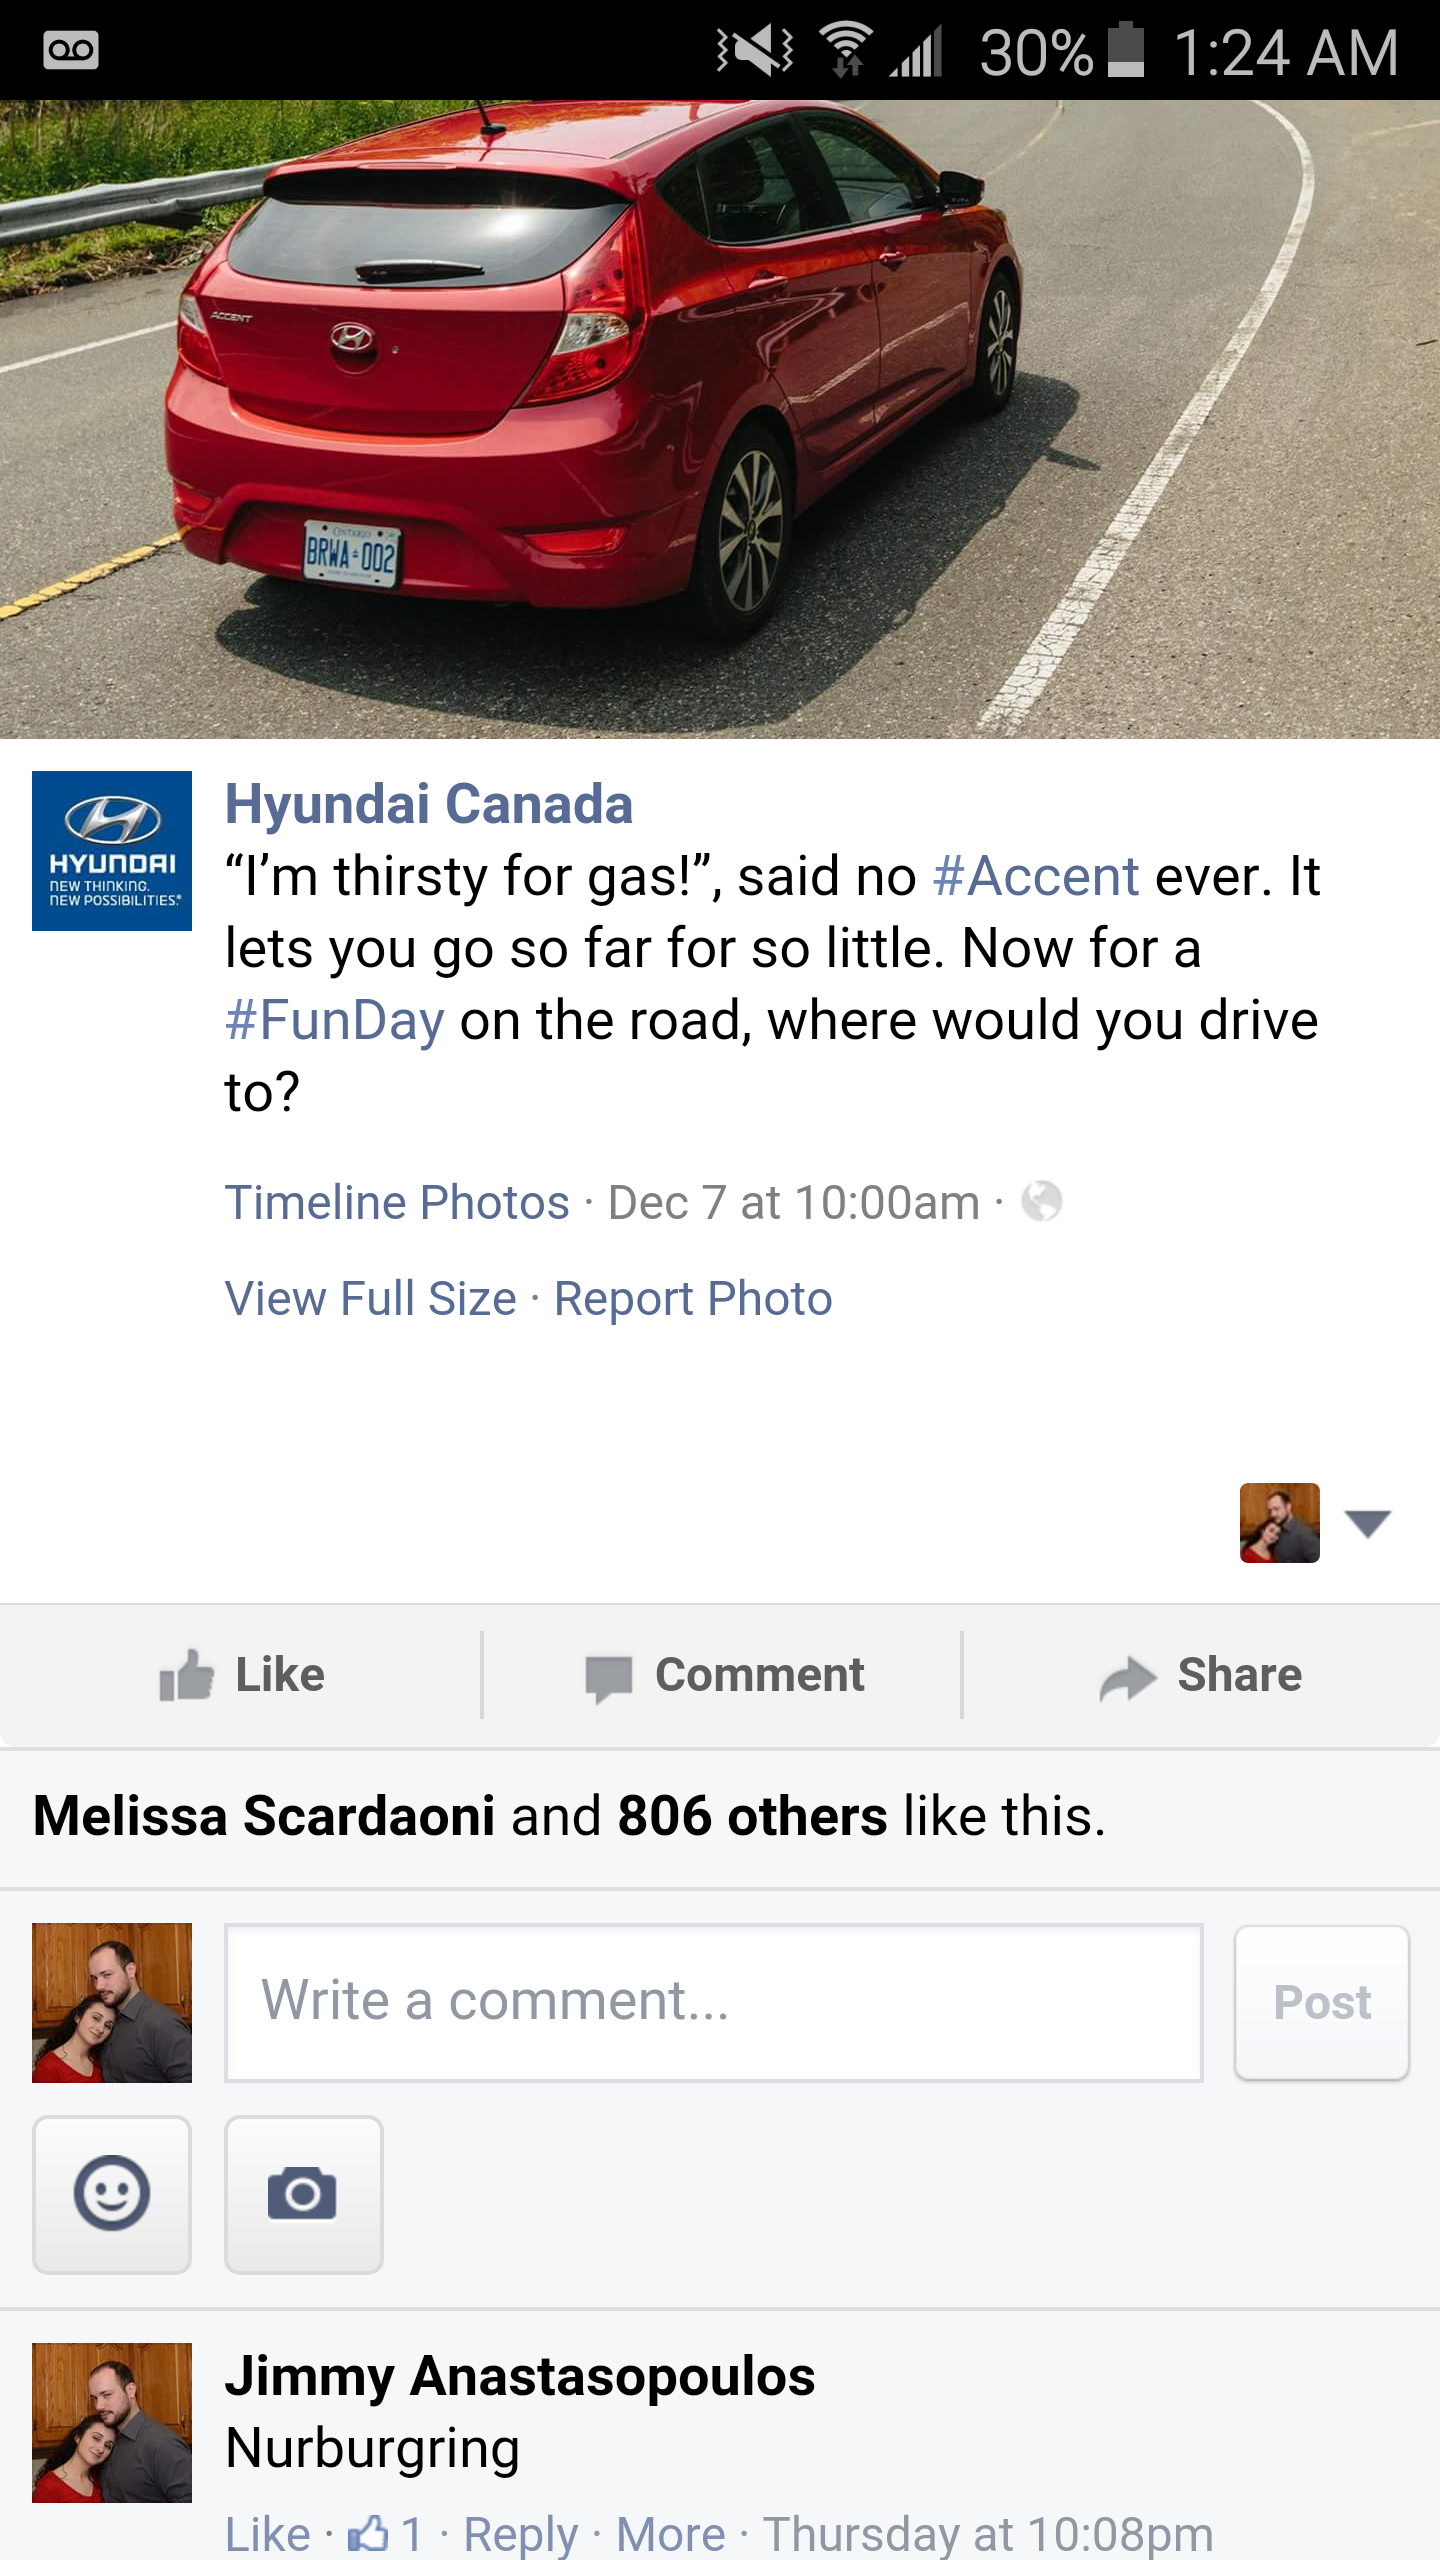 To further my trolling of the car manufacturers in fb heres something cool hyundai knows whats up